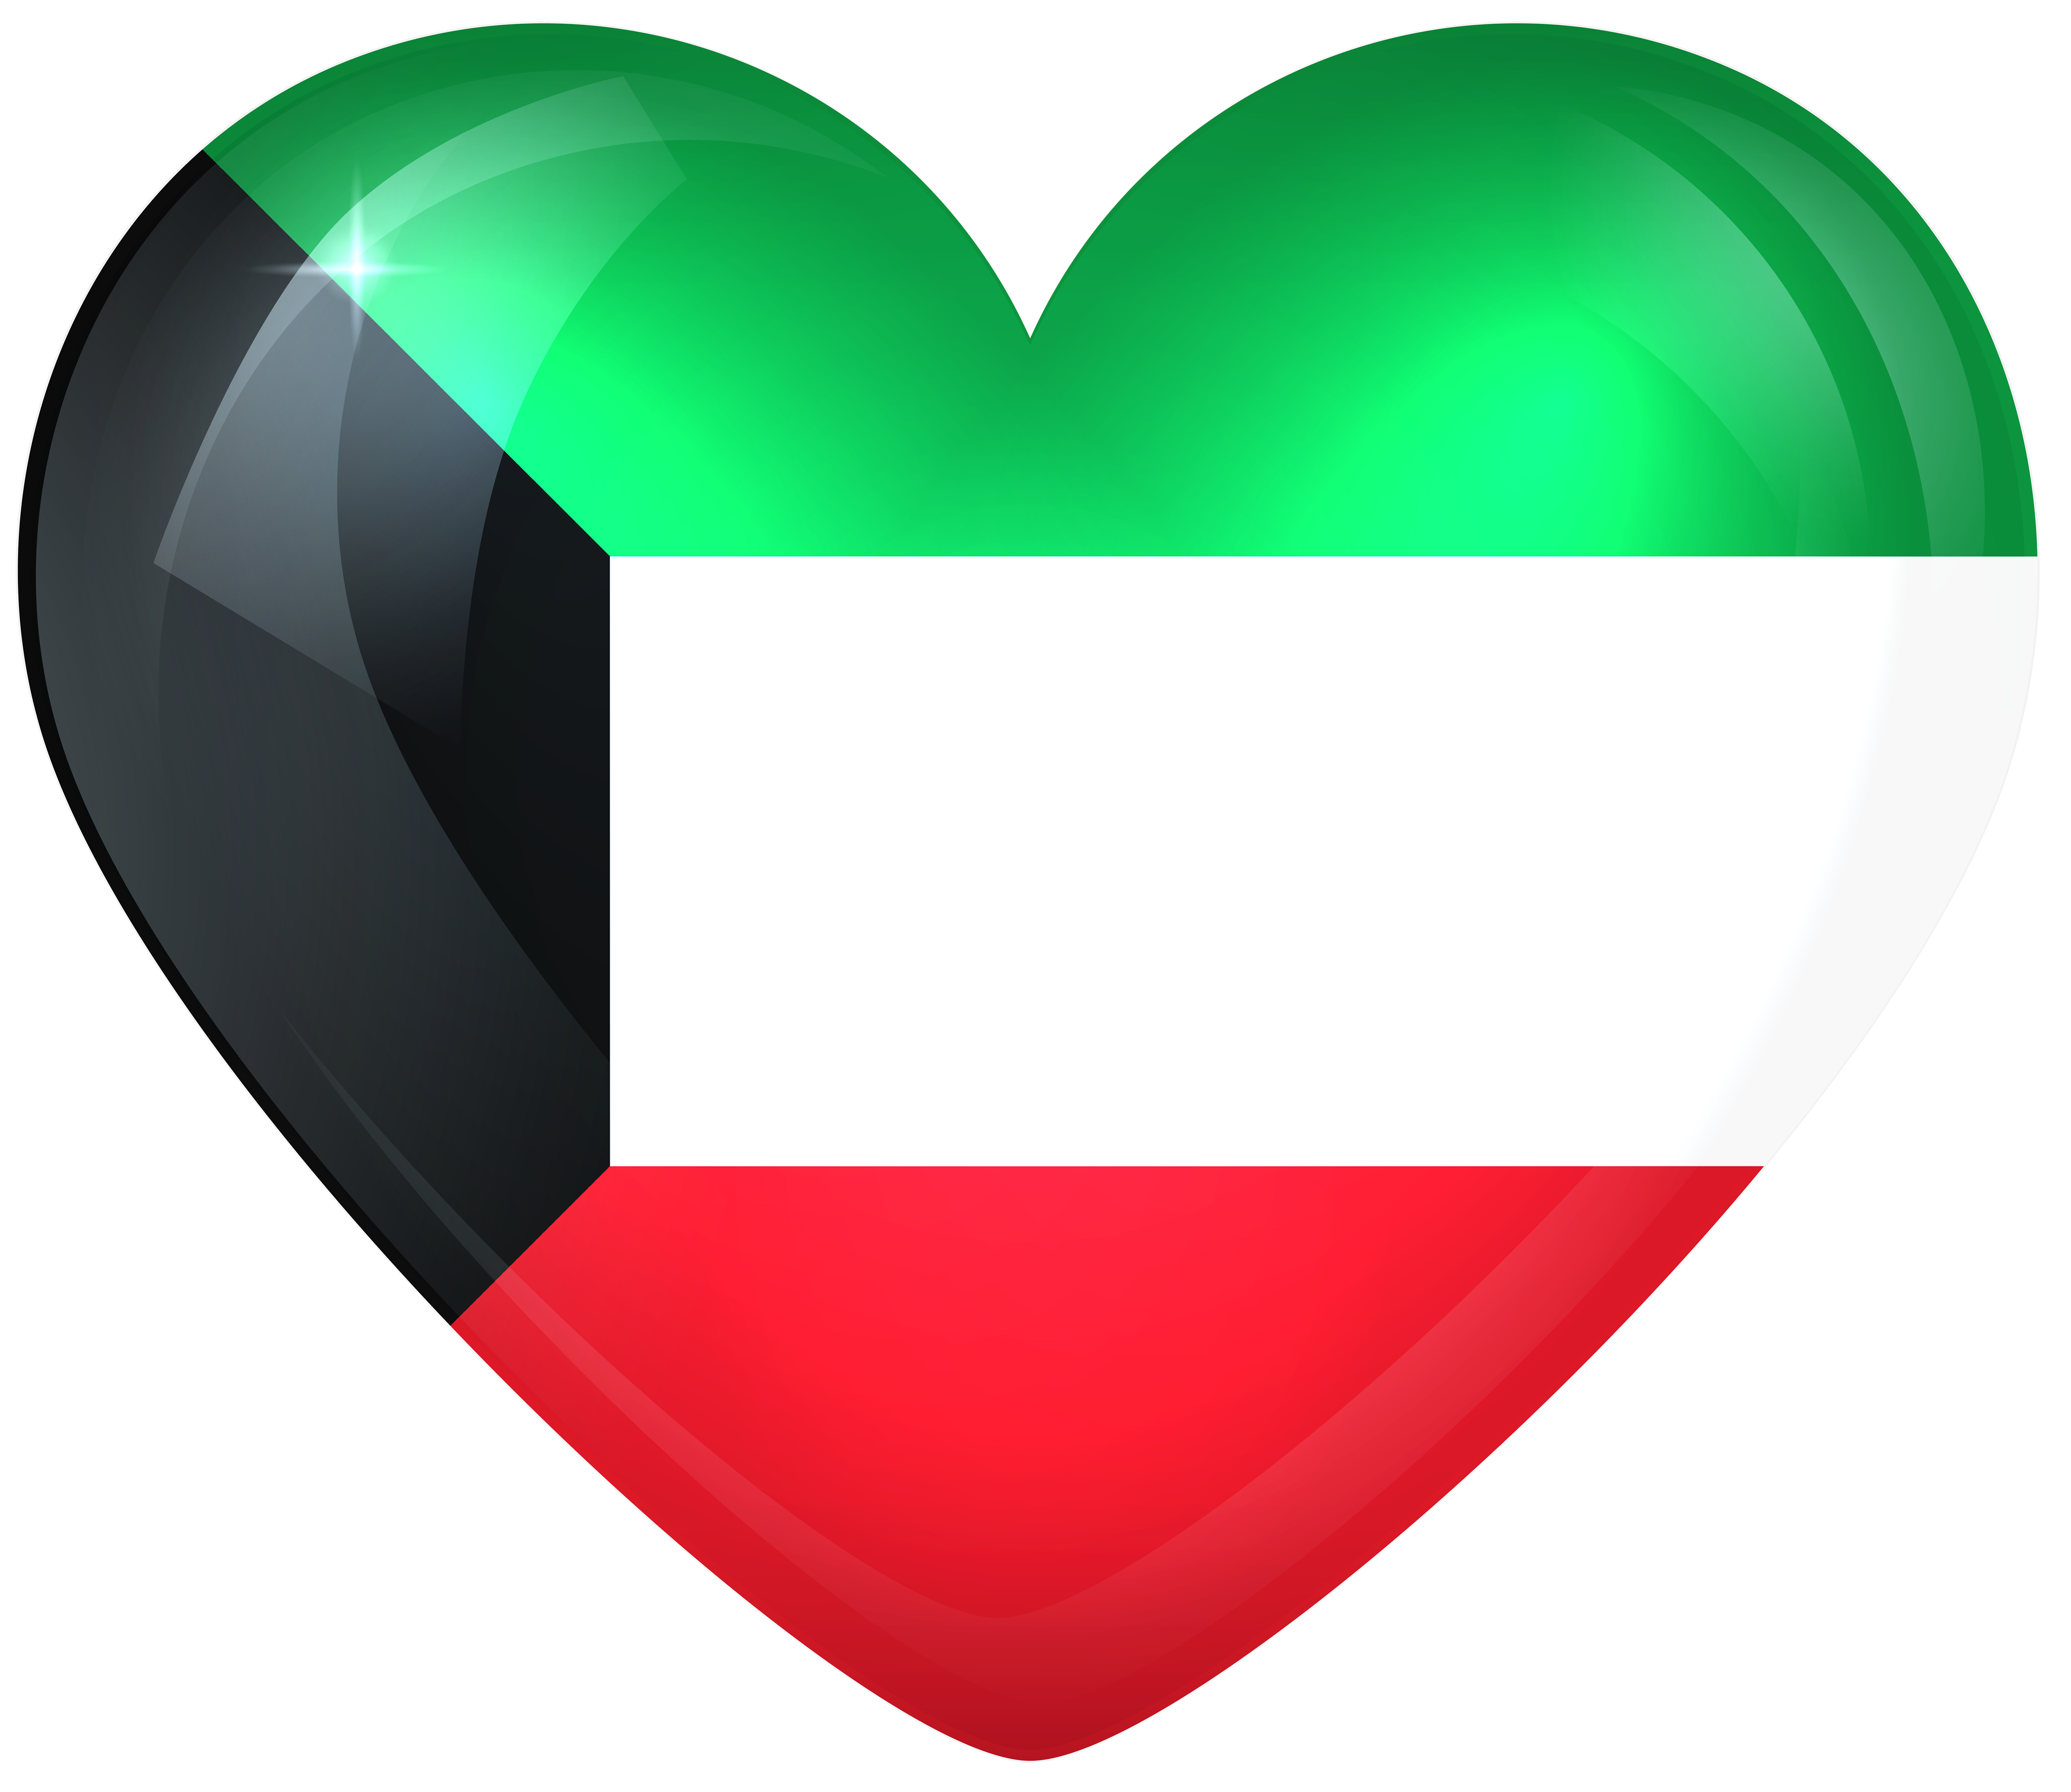 Kuwait Large Heart Flag Gallery Yopriceville High Quality Images And Transparent Png Free Clipart Kuwait National Day Kuwait Flag City Wallpaper